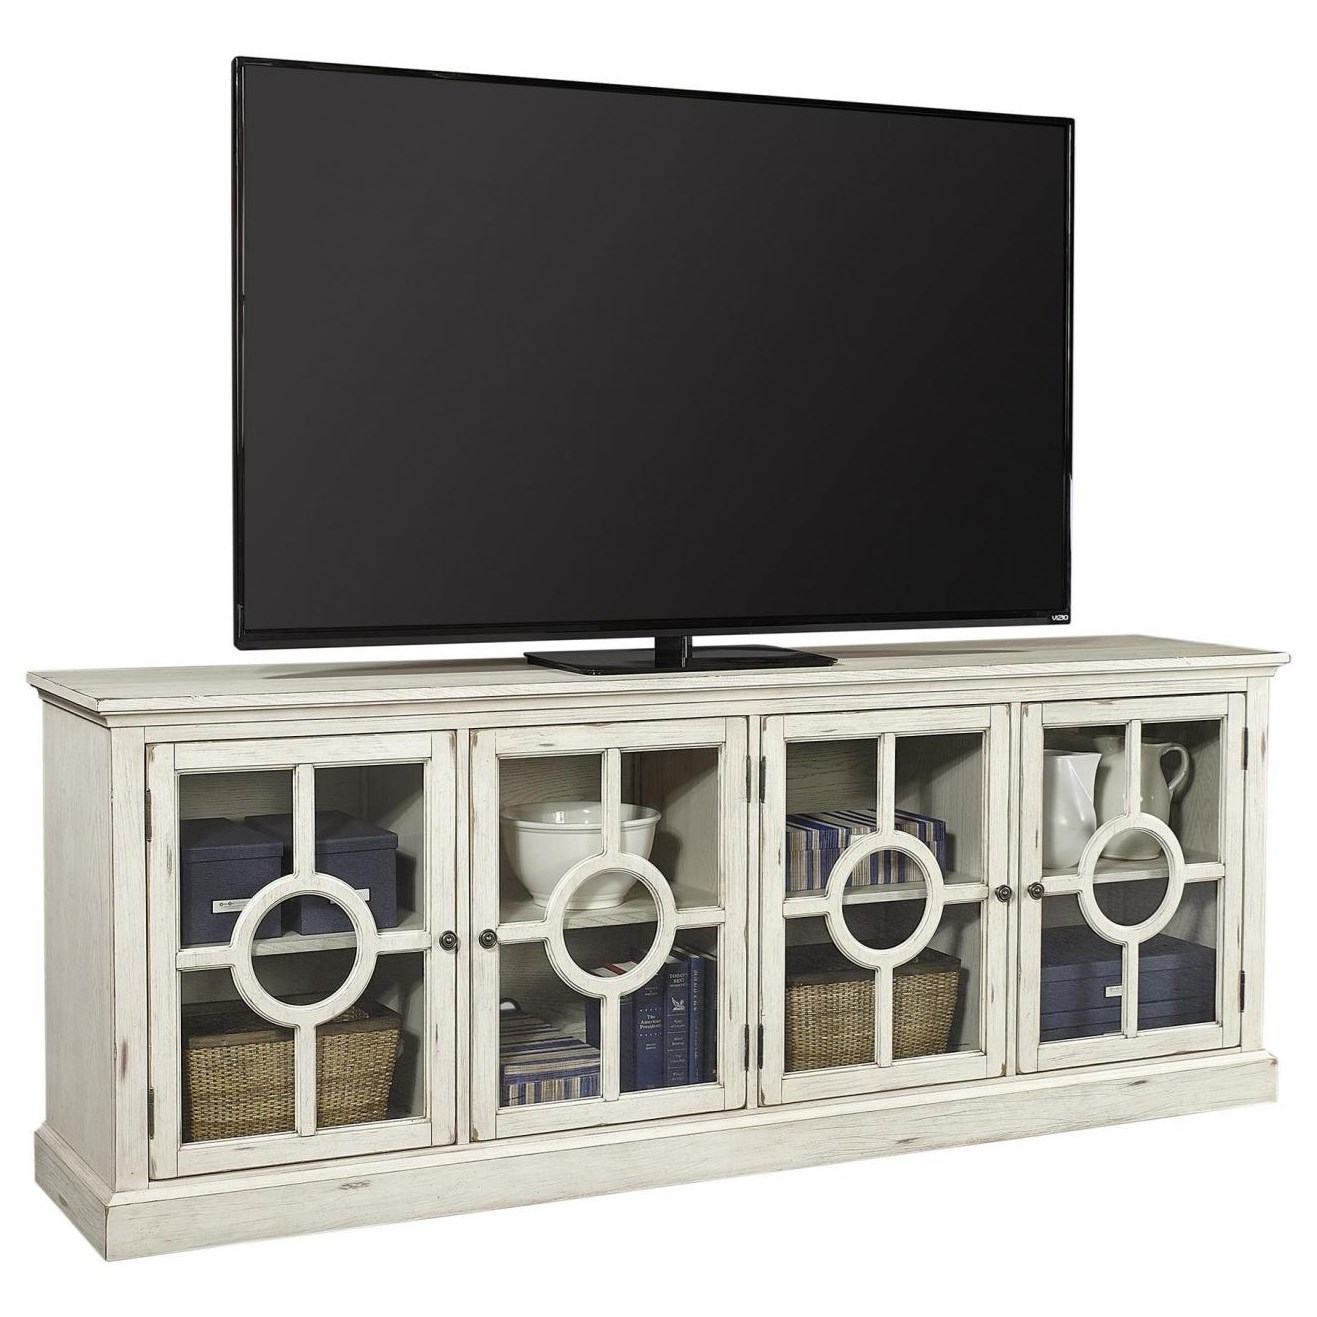 """Radius  86"""" TV Stand  by Aspenhome at Walker's Furniture"""